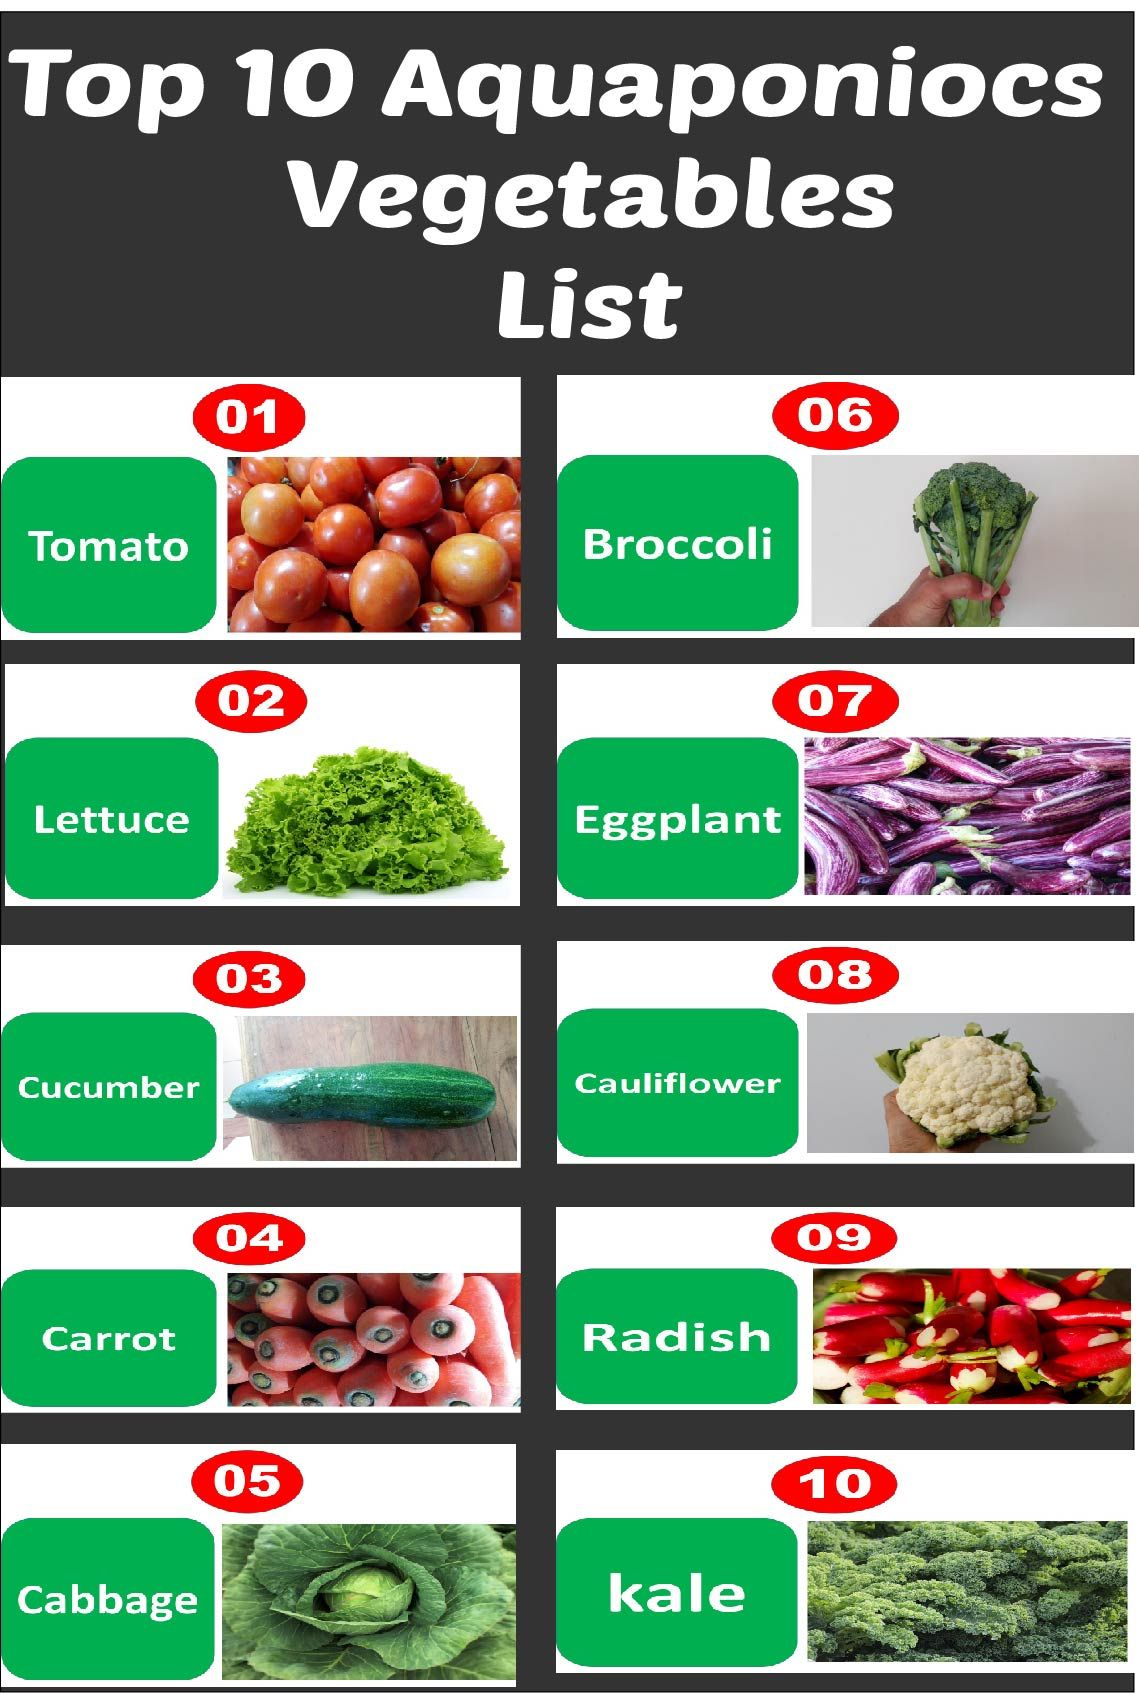 top 10 aquaponics vegetables list every body should know garden